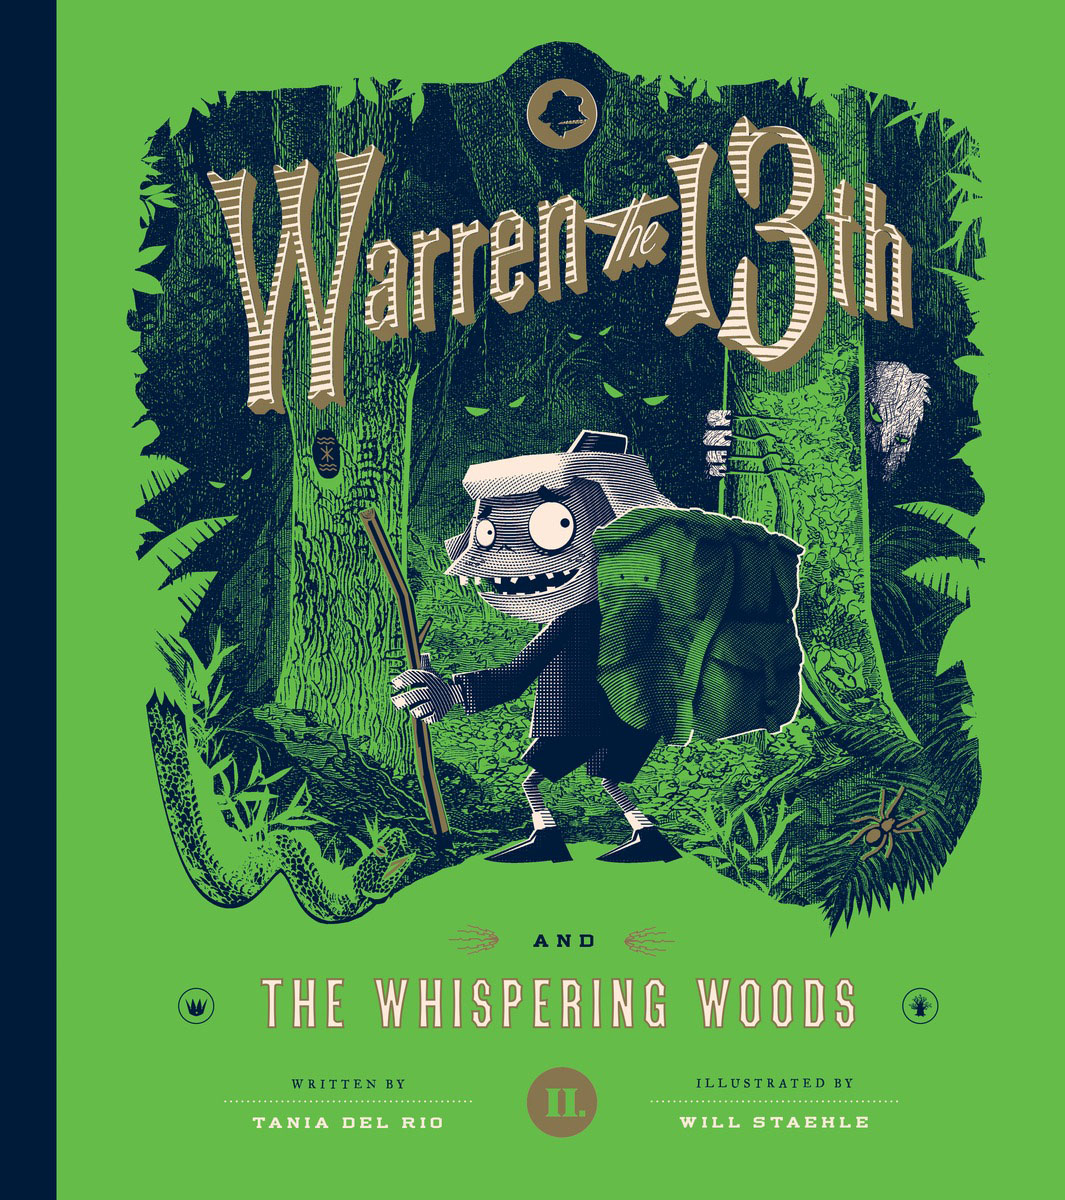 Warren the 13th and the Whispering Woods the best exotic marigold hotel